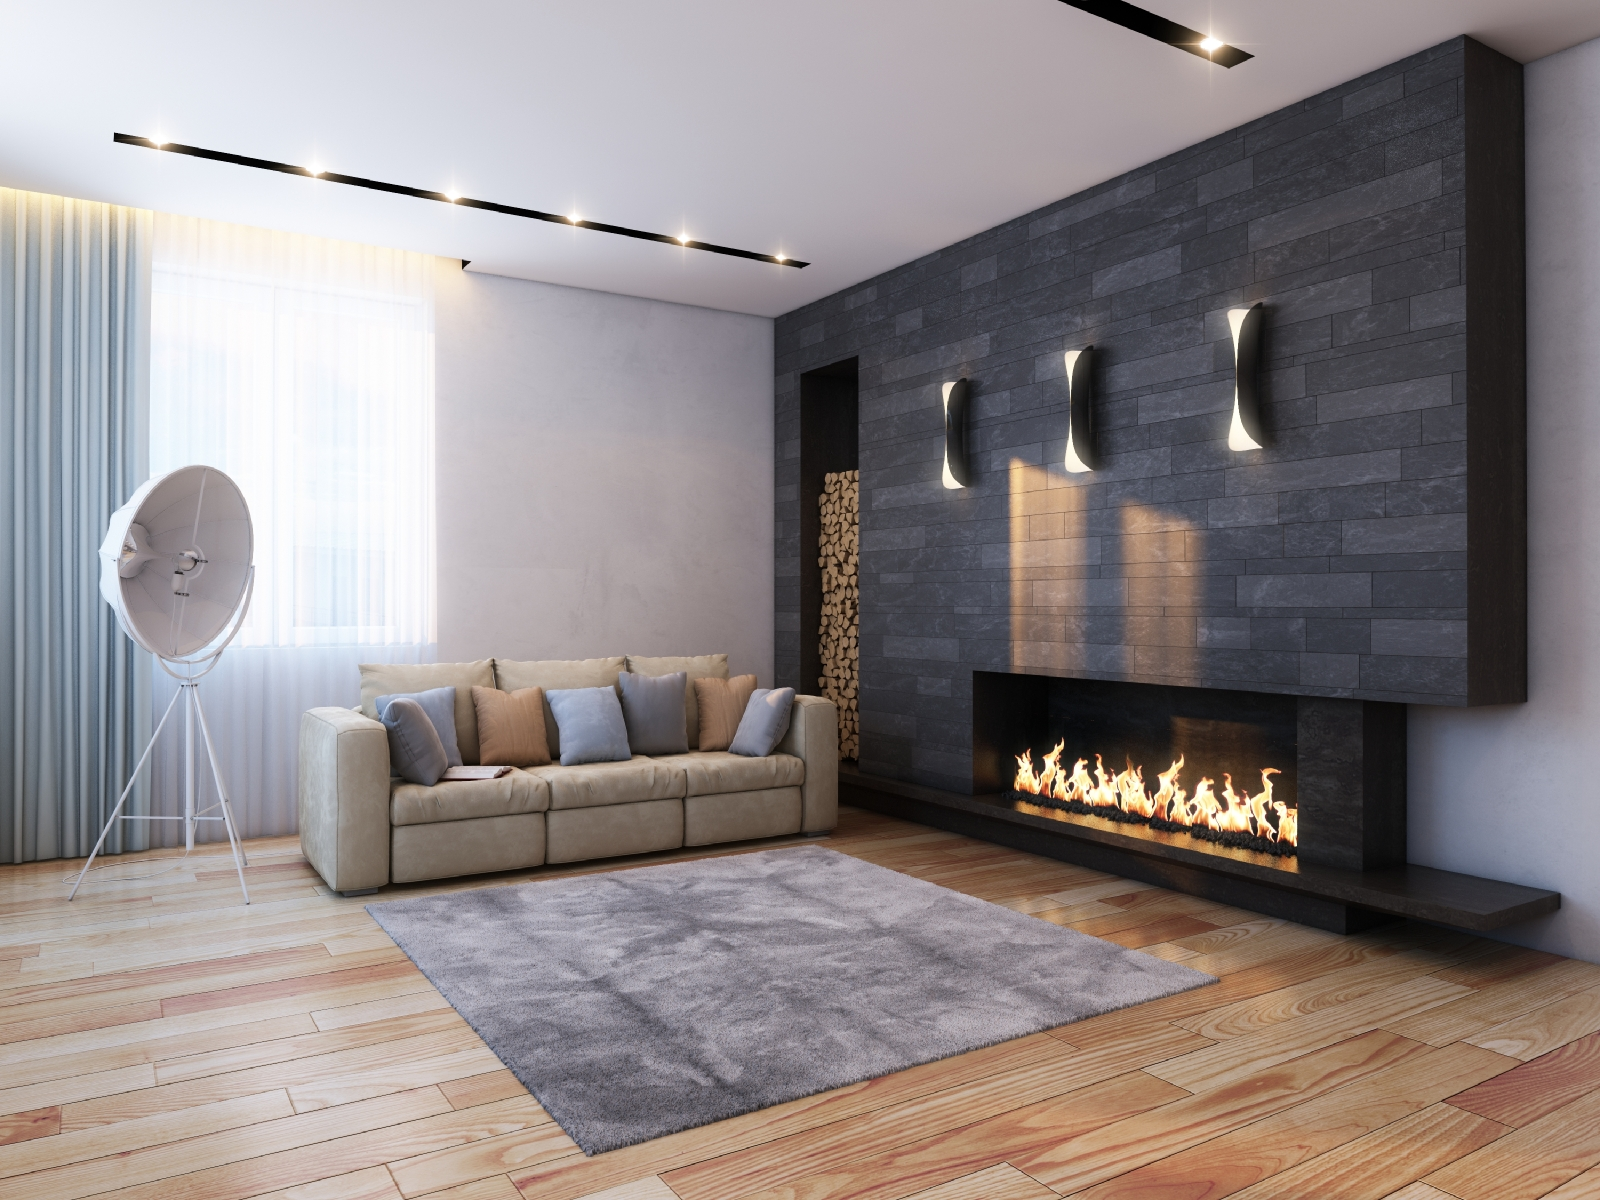 v2%2fimages%2farticles%2fhome-ideas-article-images%2ffireplace-rug